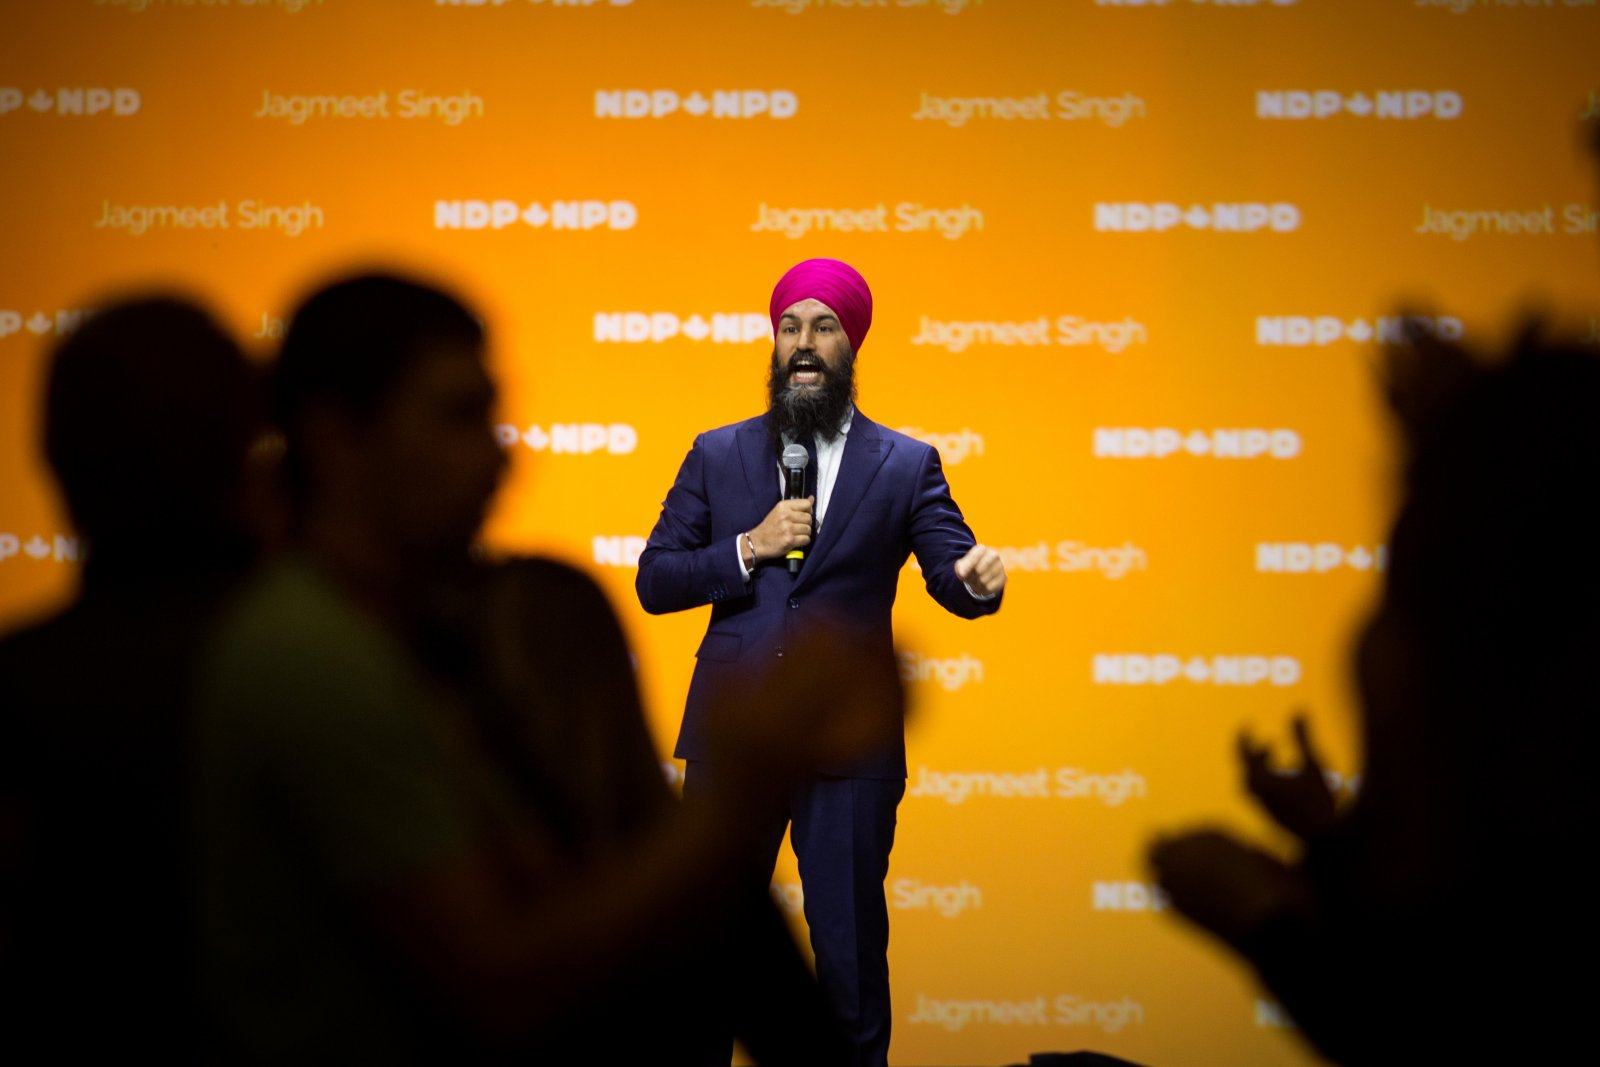 Jagmeet Singh speaks to delegates during the NDP's convention in Ottawa on Feb. 17, 2018. Photo by Alex Tétreault